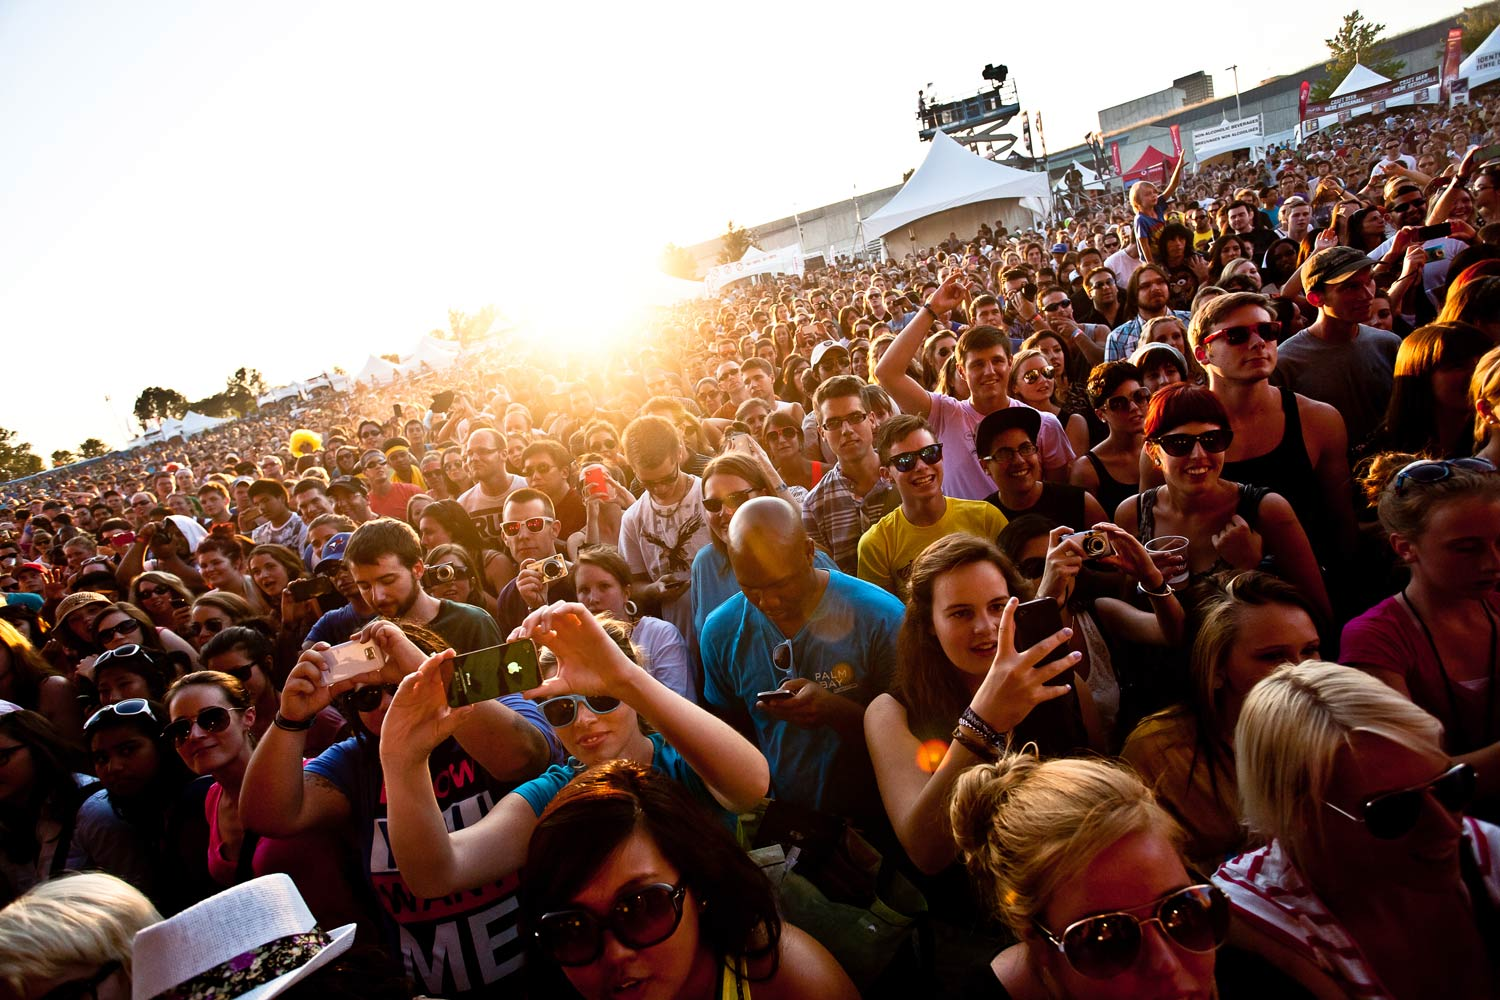 sunset-crowd2.jpg